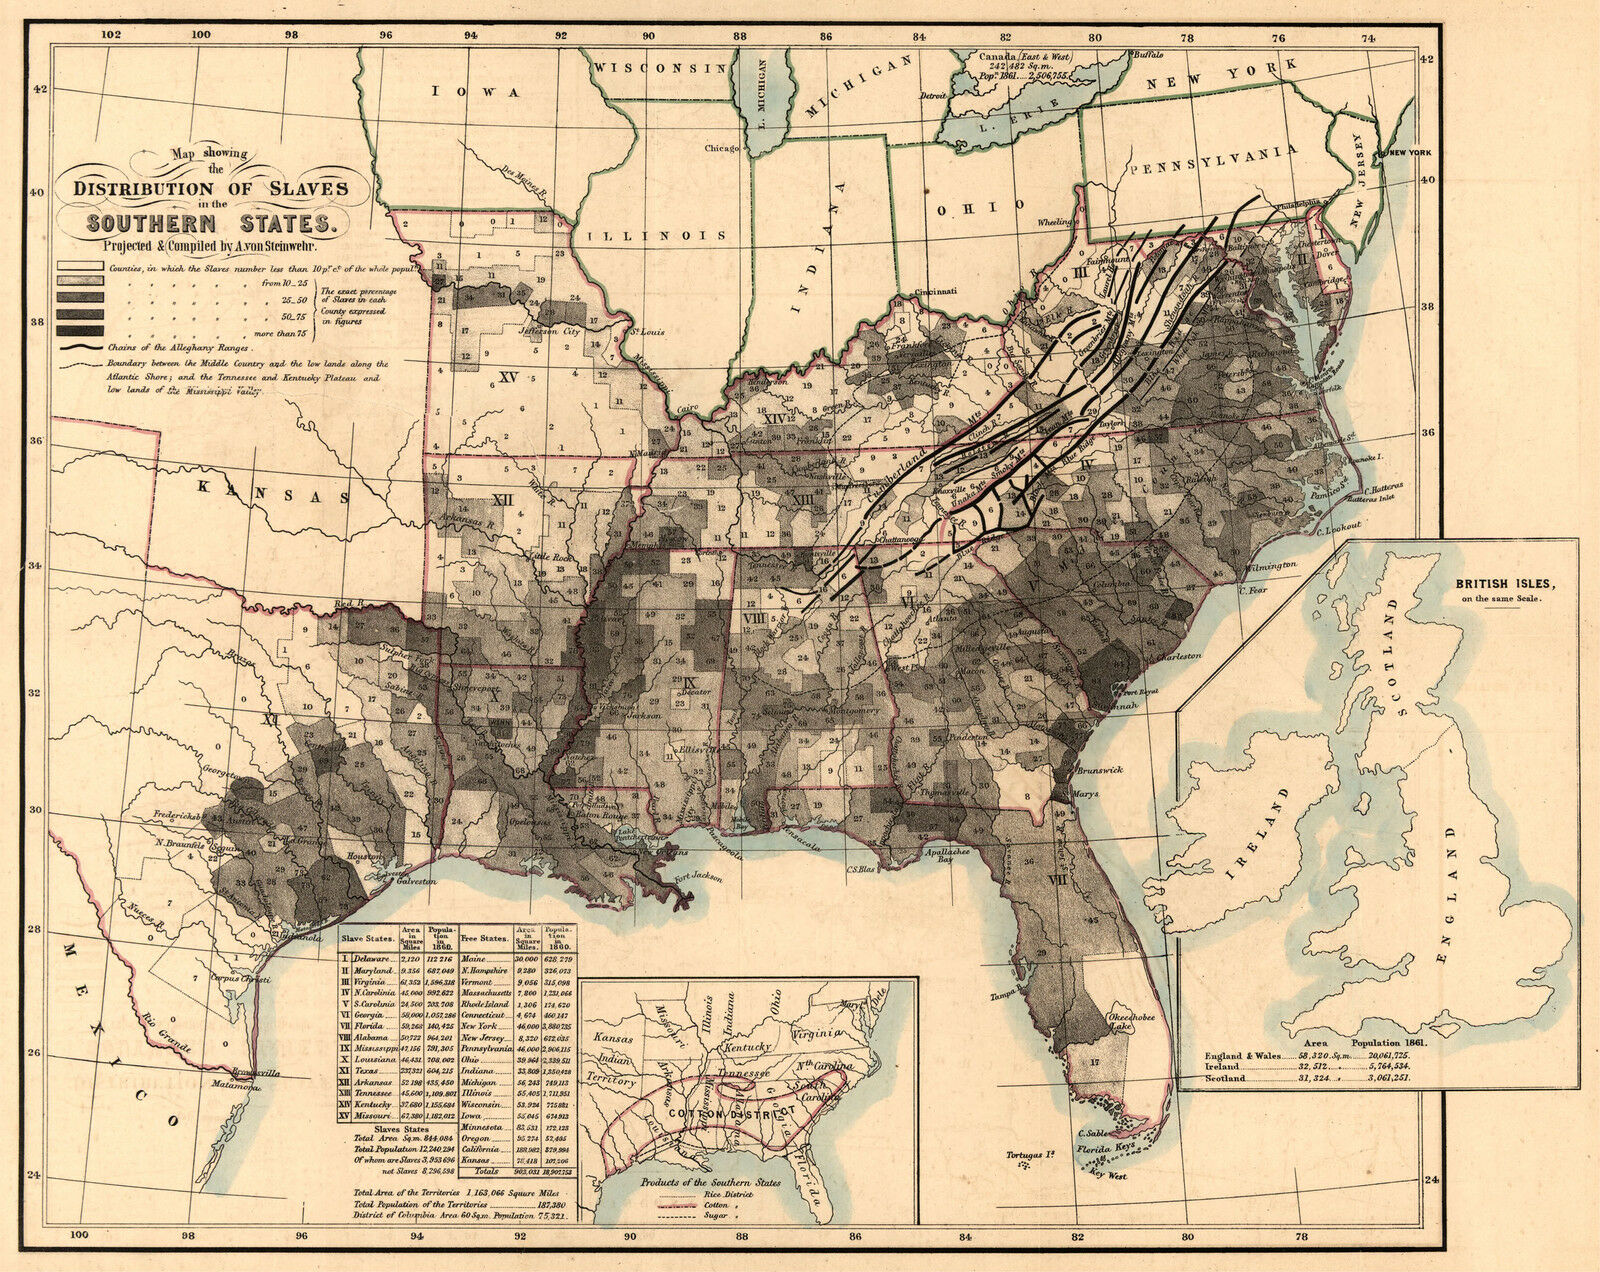 1864 Map showing SLAVERY distribution, Black History, U.S America, Trade, (NICE)